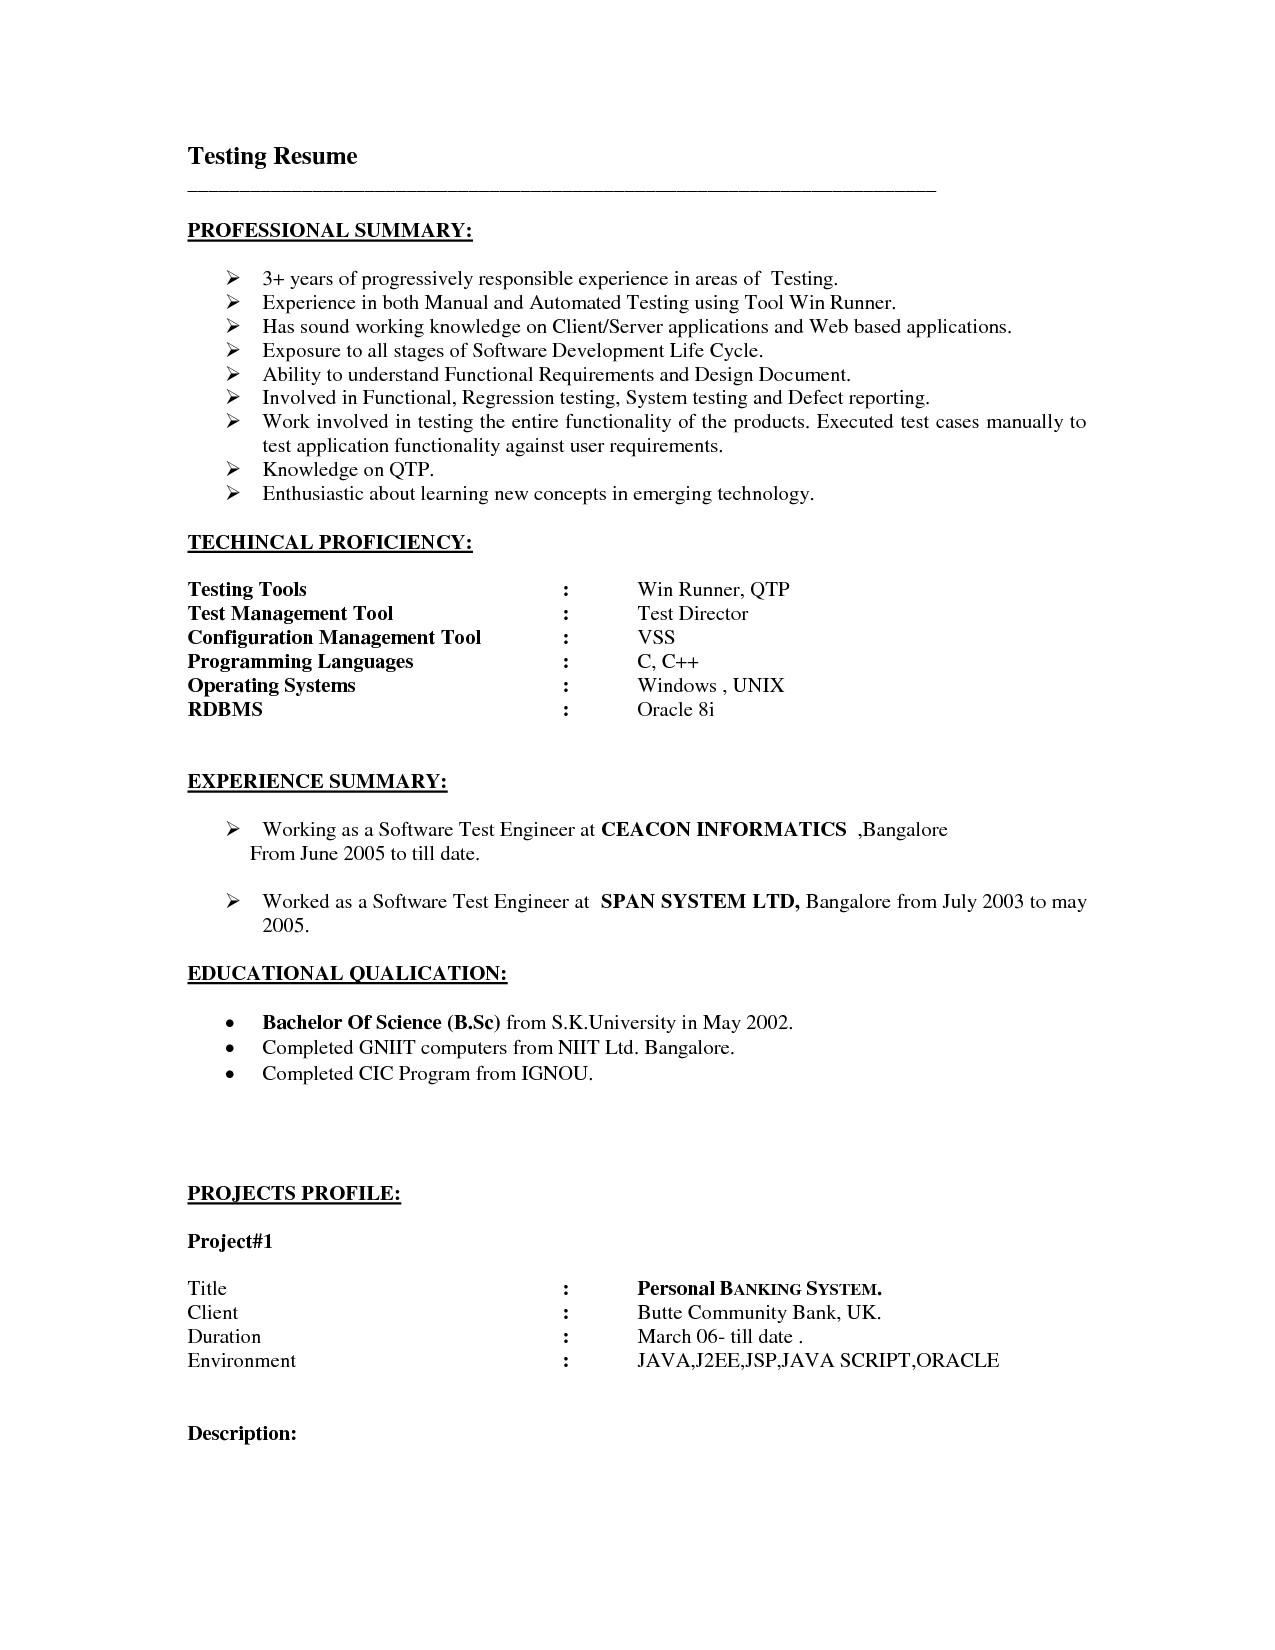 Selenium Automation Tester Resume - Sample Resume for Selenium Automation Testing Best Qtp Test